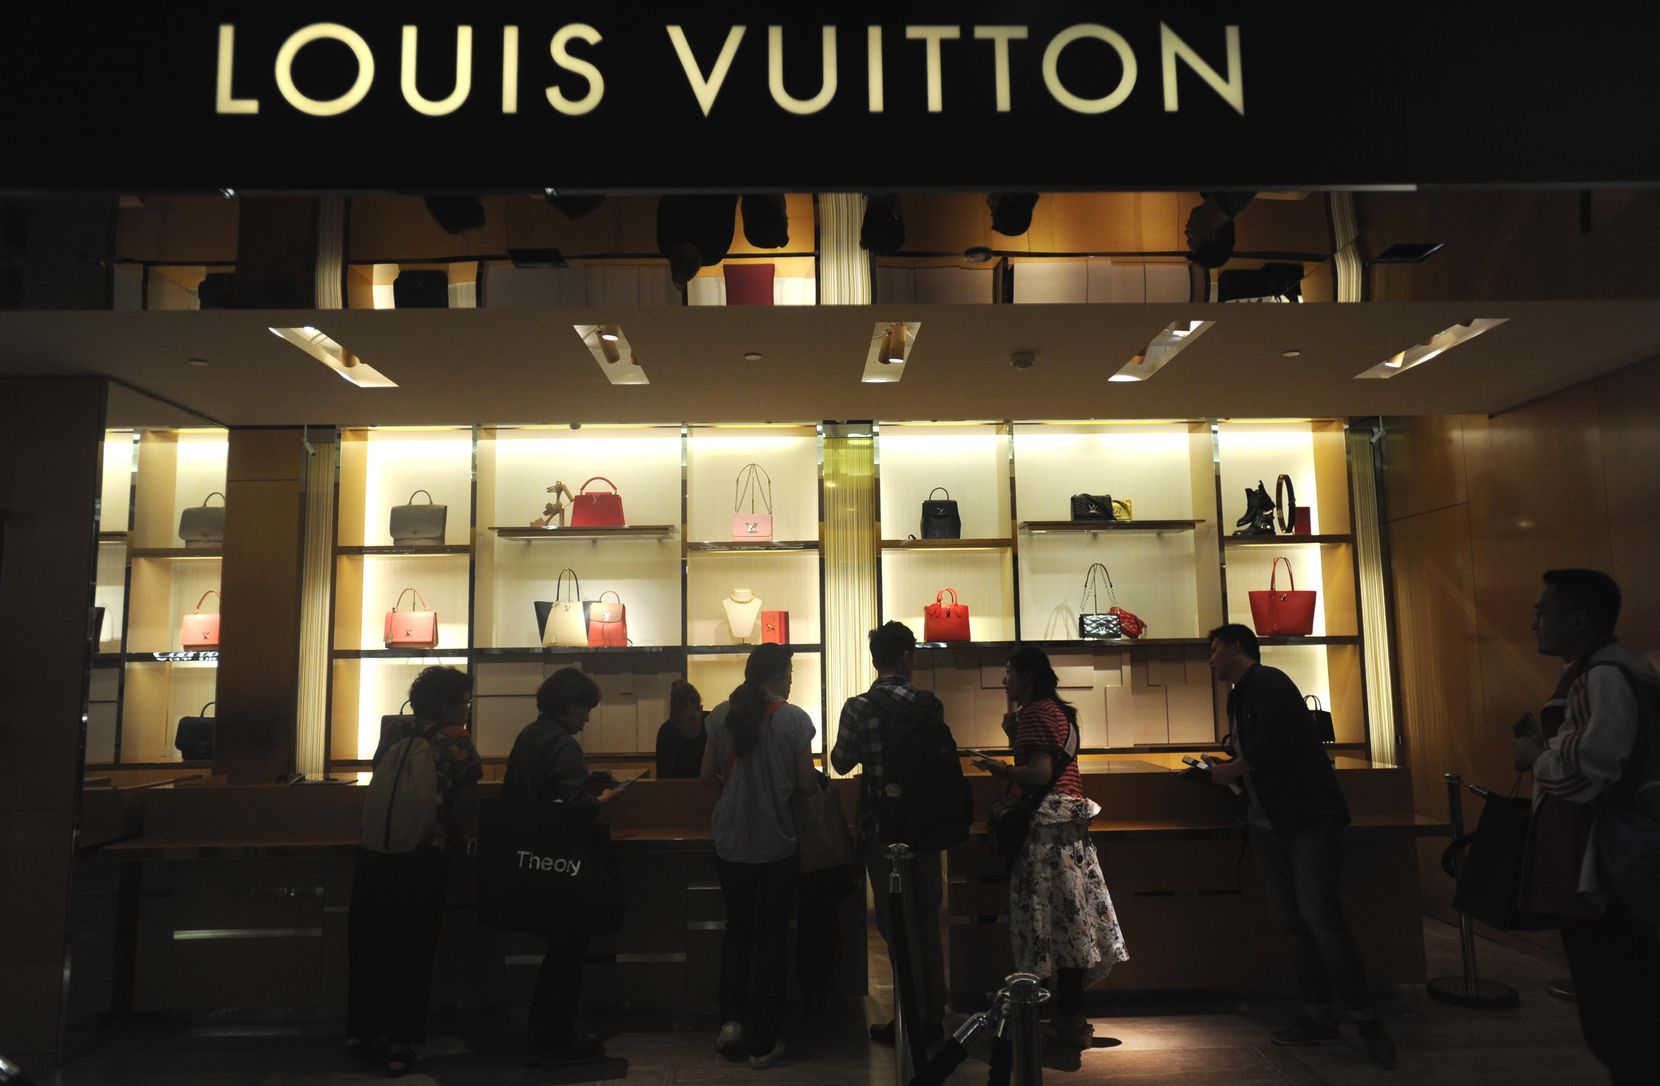 Louis Vuitton is part of a global business that accounted for $47 billion in sales last year.